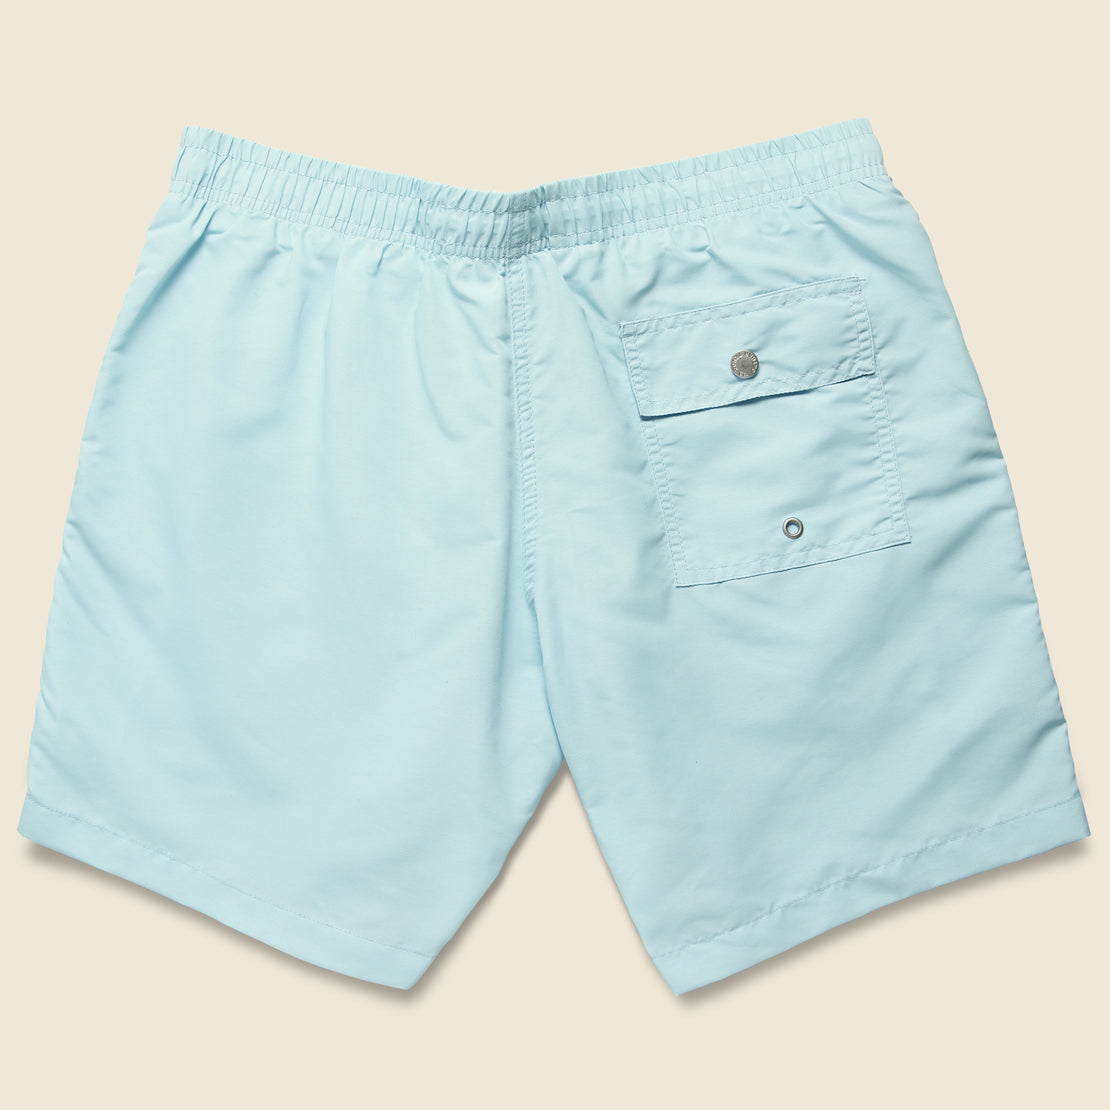 Solid Swim Trunk - Baby Blue